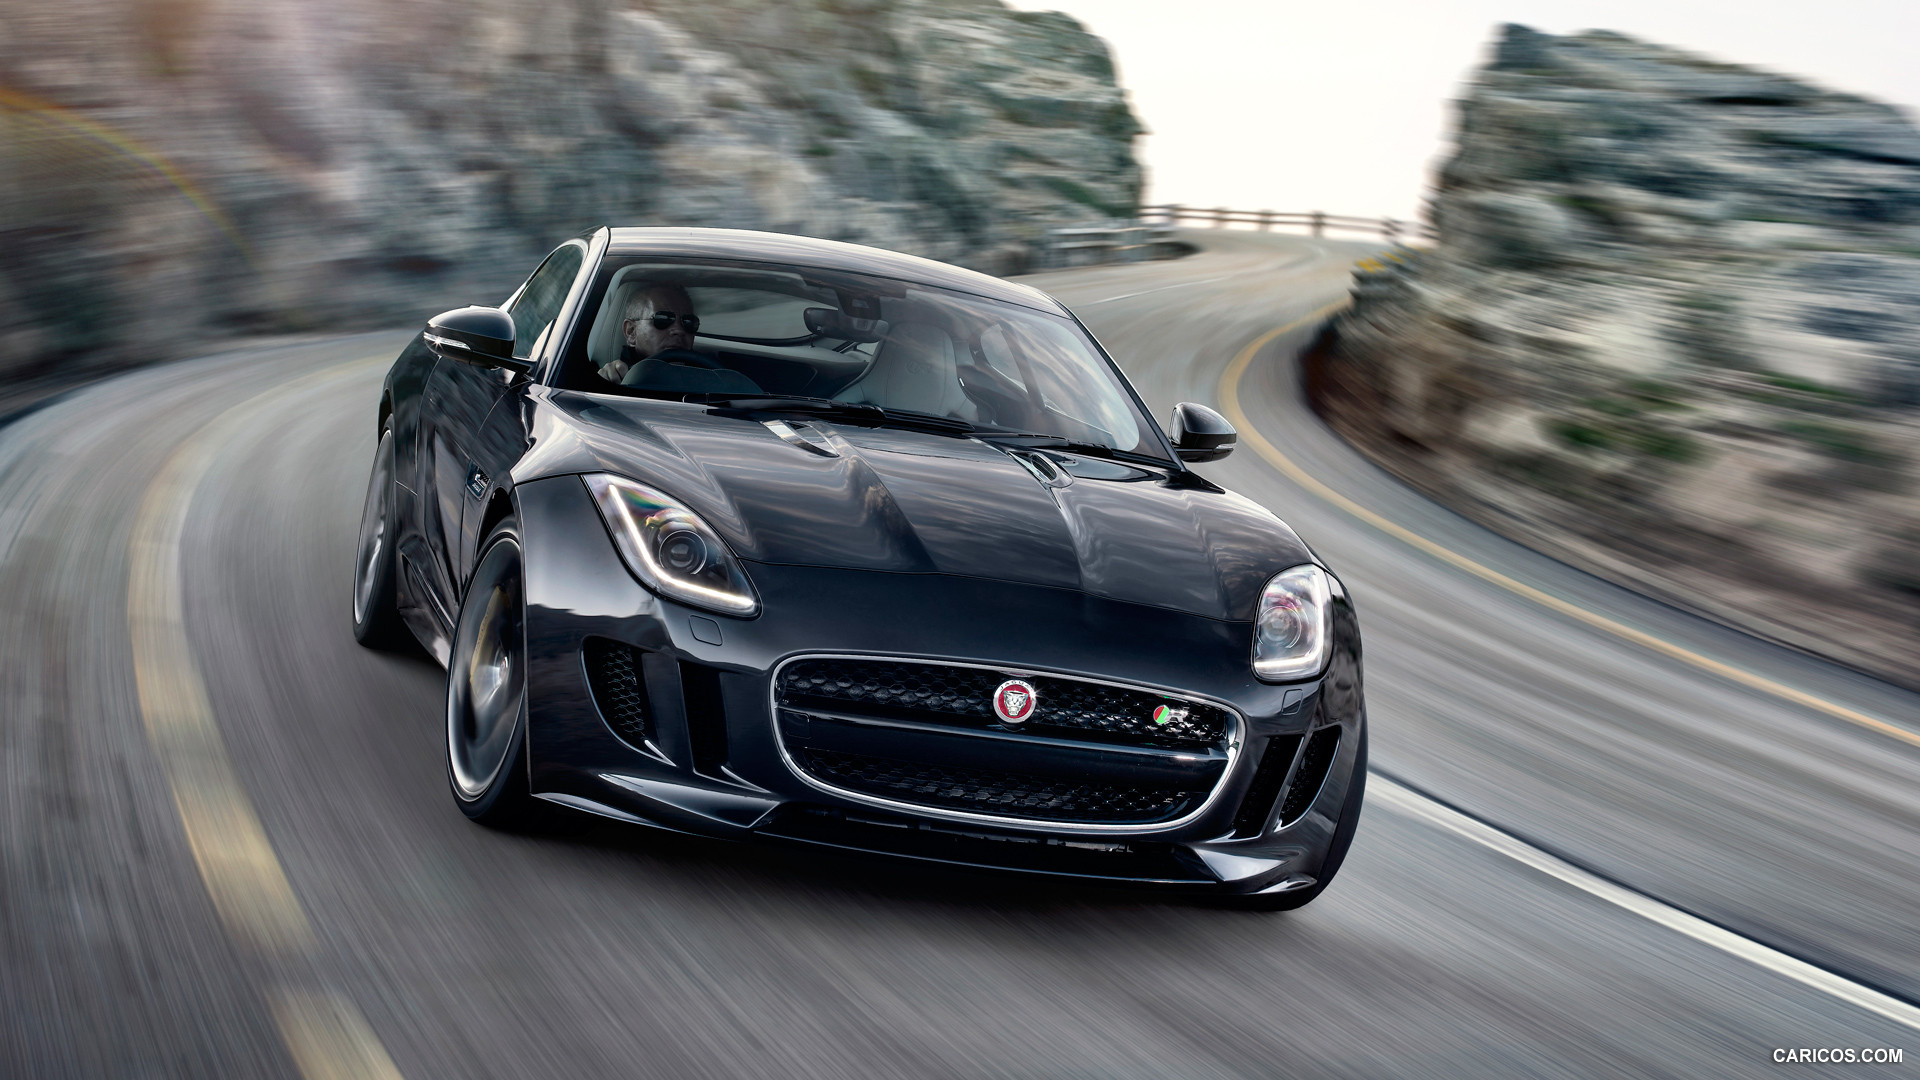 Jaguar F Type Wallpaper 1920x1080 60700